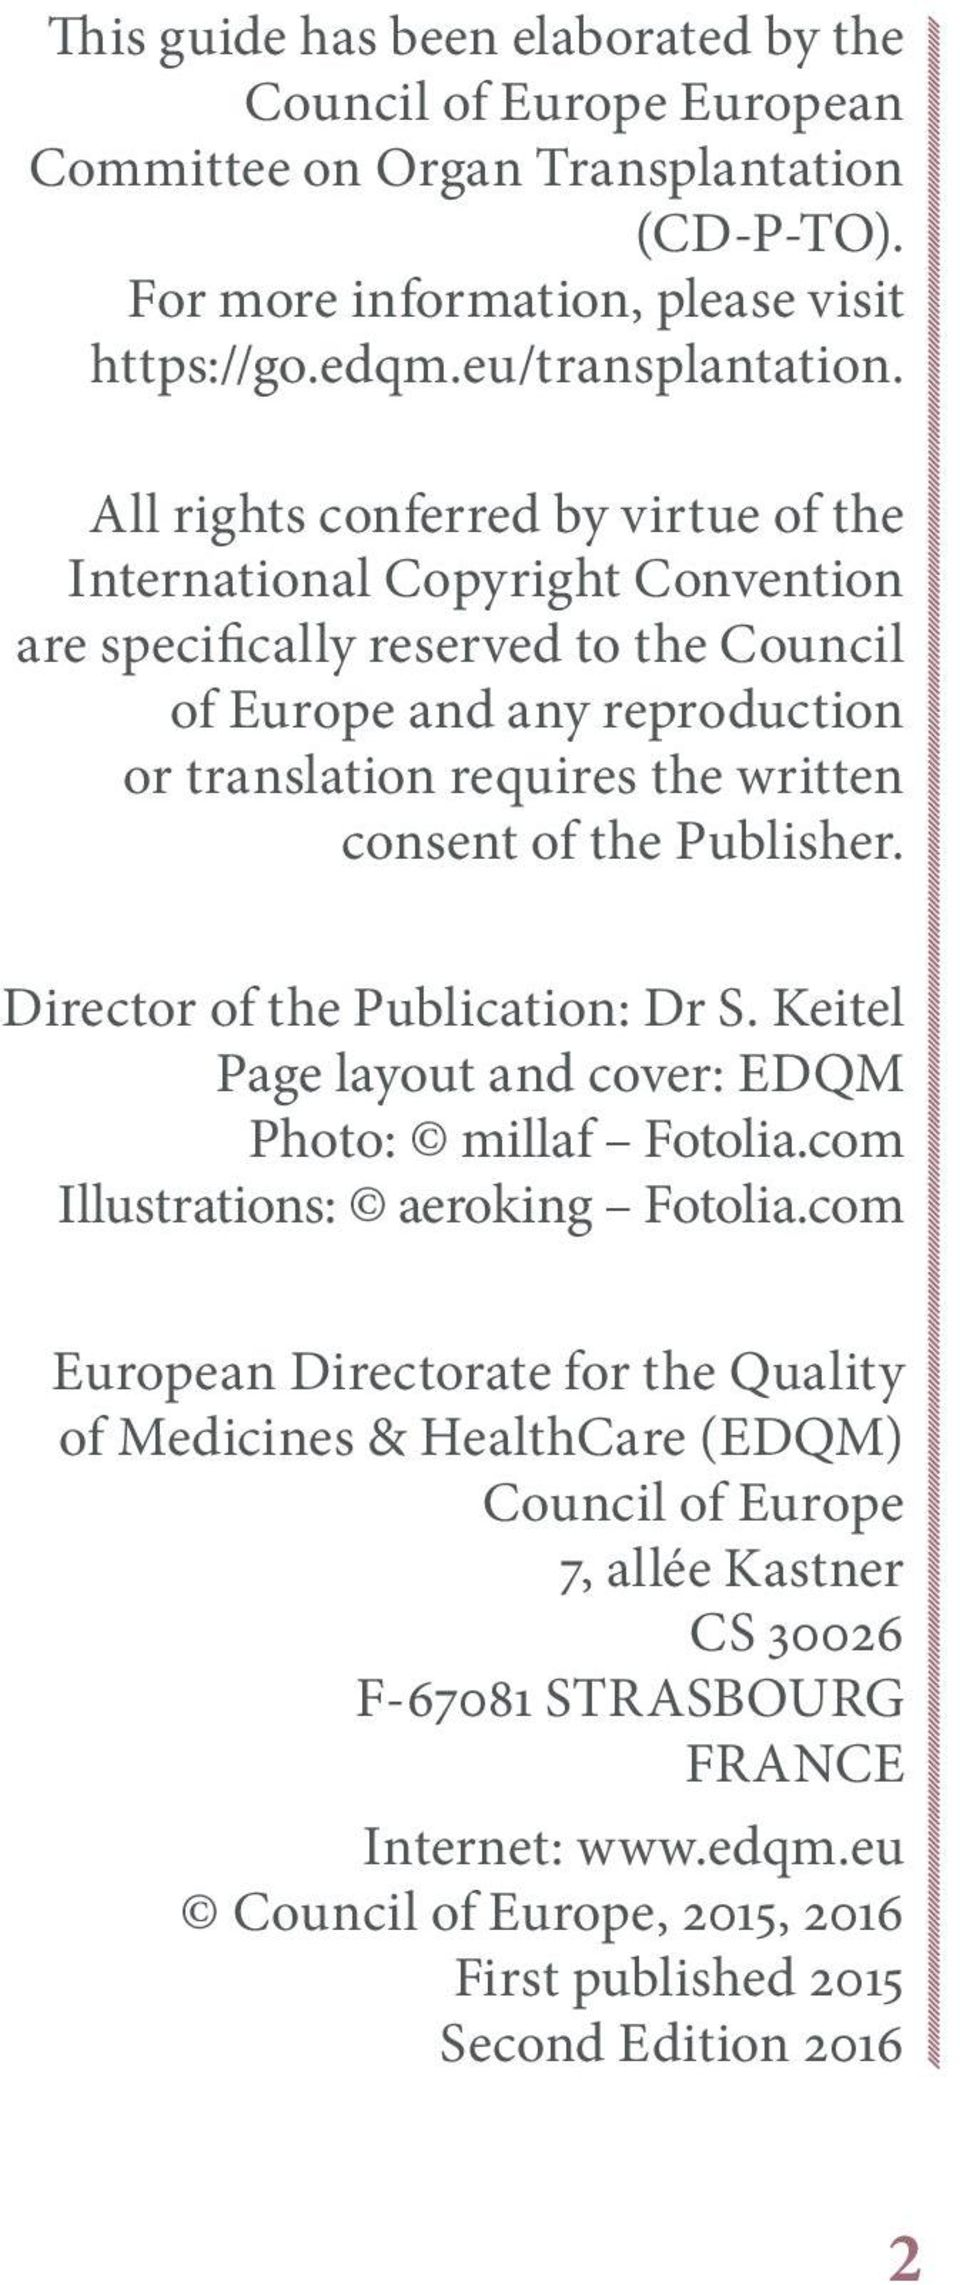 of the Publisher. Director of the Publication: Dr S. Keitel Page layout and cover: EDQM Photo: millaf Fotolia.com Illustrations: aeroking Fotolia.